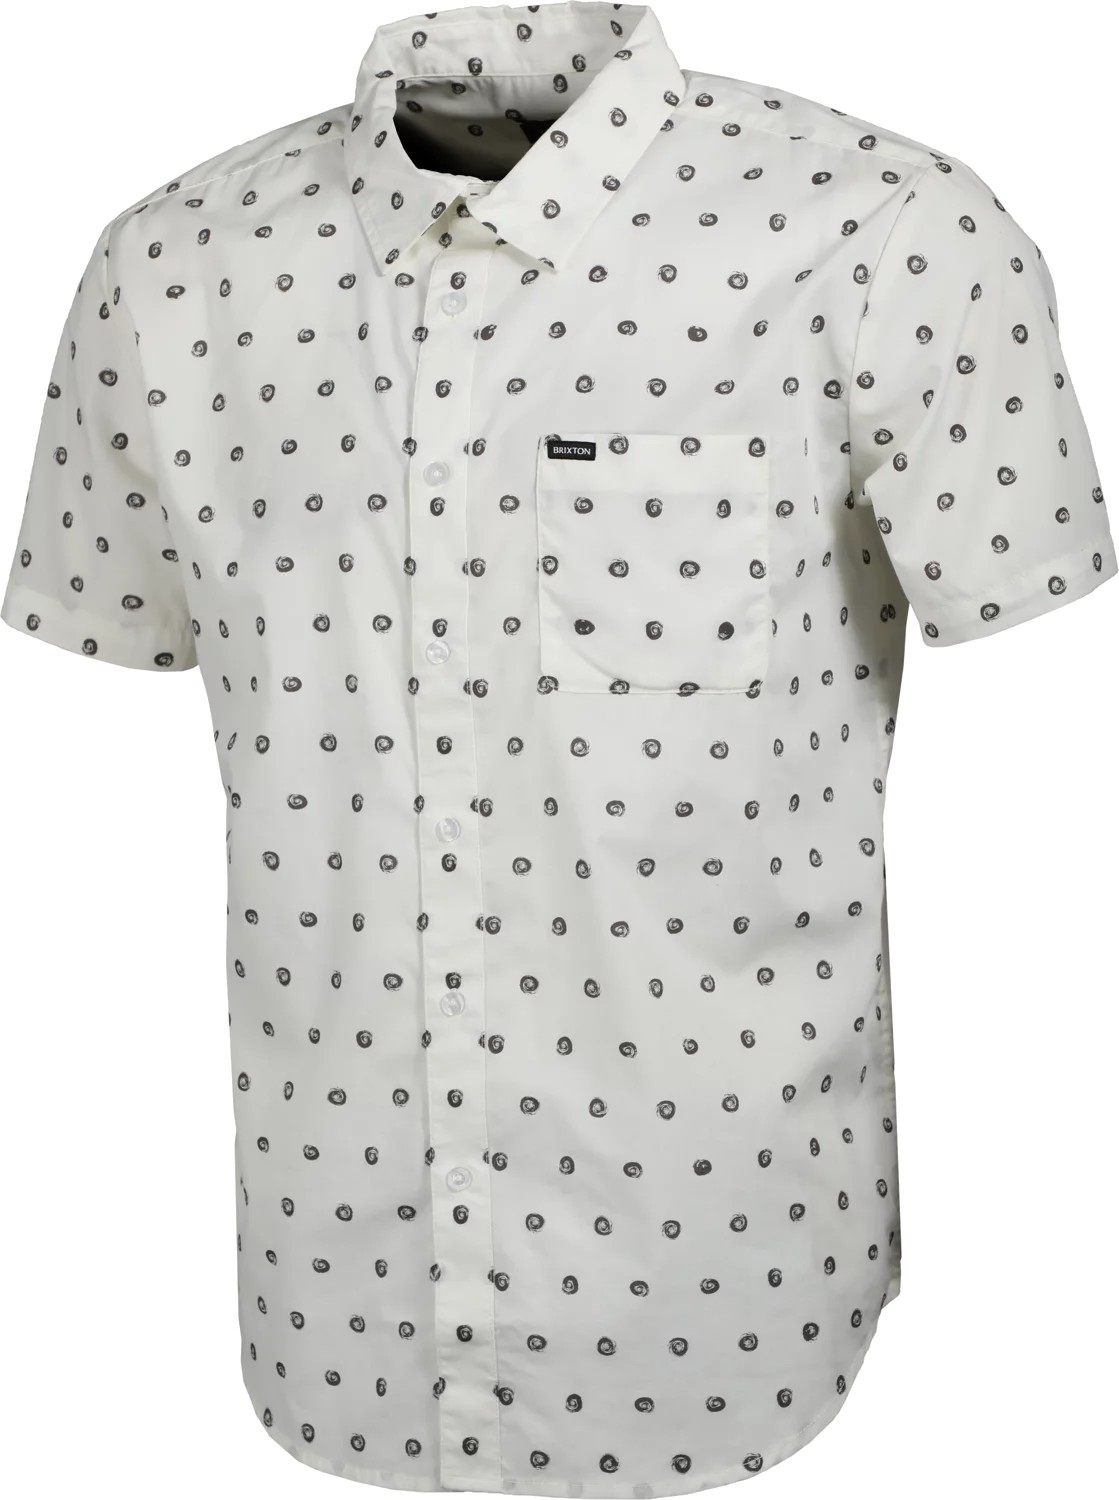 BRIXTON CHARTER PRINT S/S WOVEN OVERHEMD - OFF WHITE/CHARCOAL